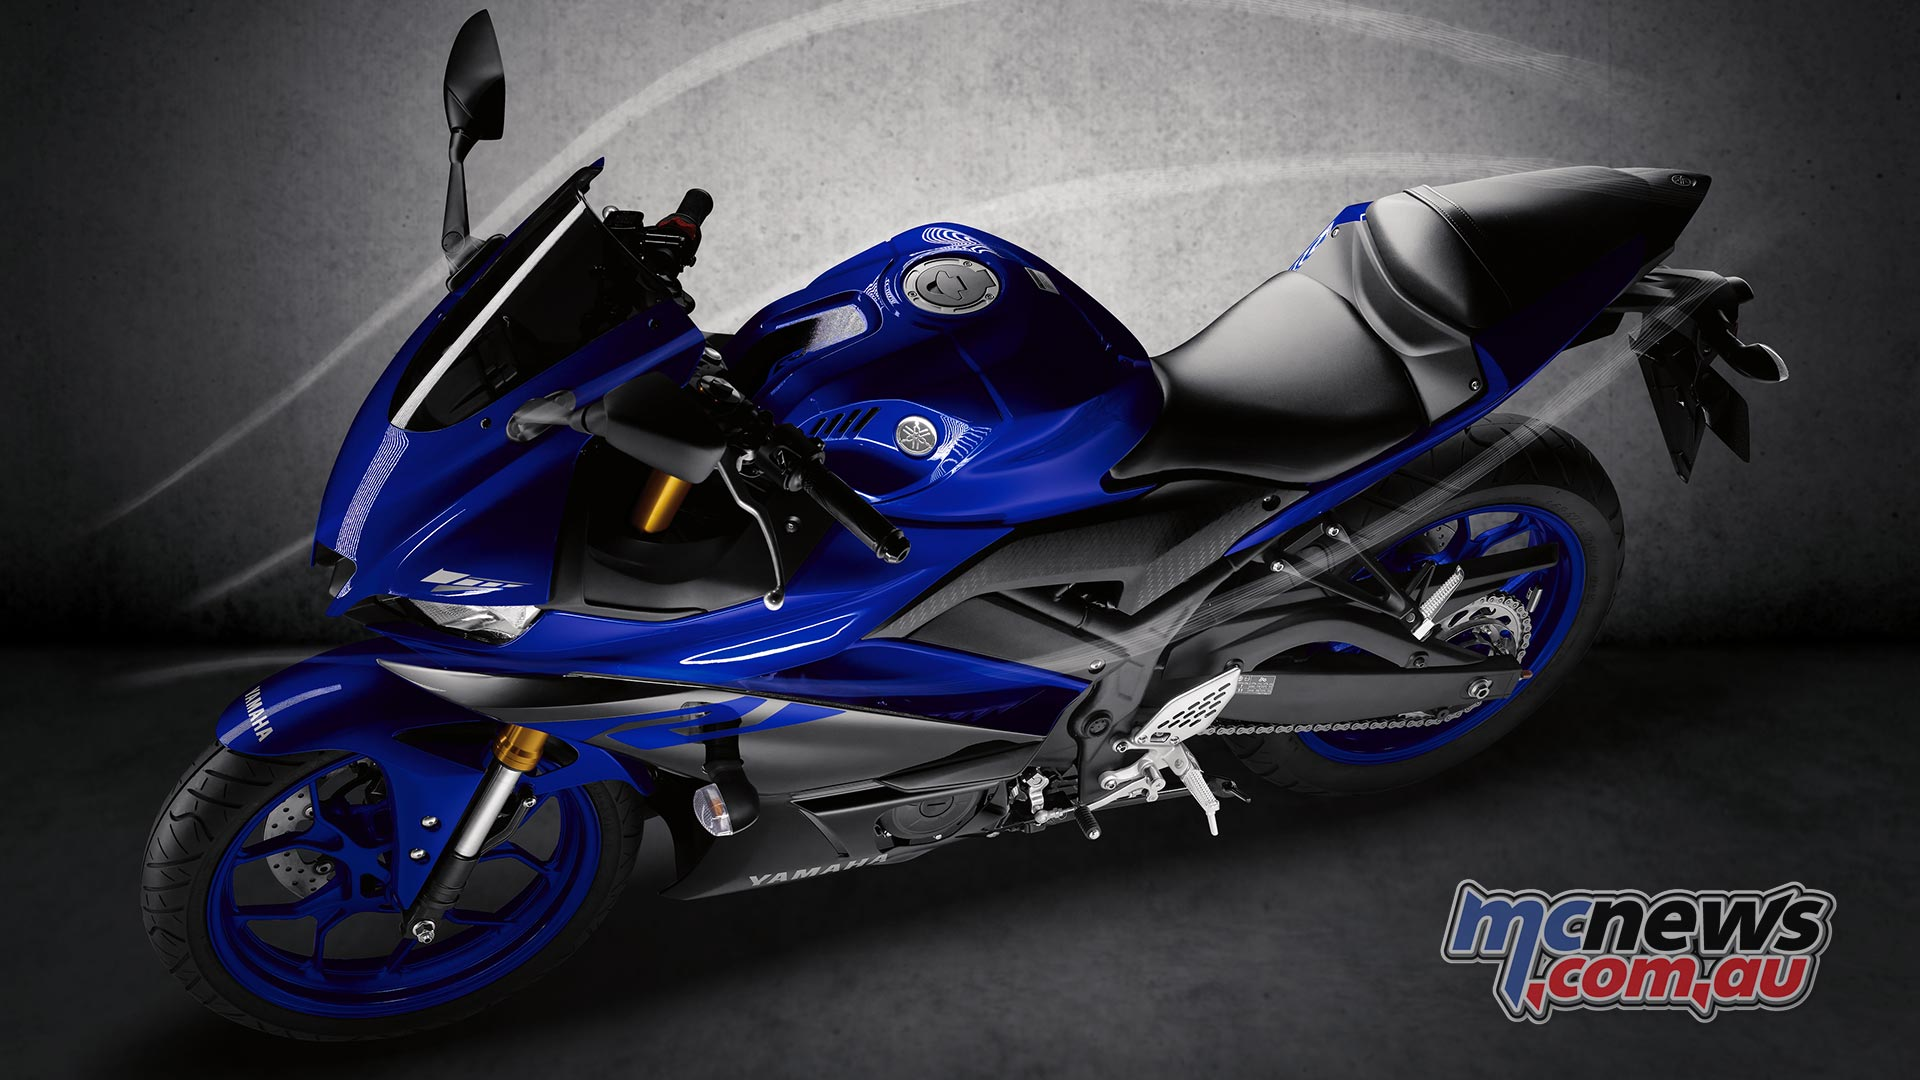 2019 Yamaha Yzf R3 Updated Style Chassis Mcnews Com Au